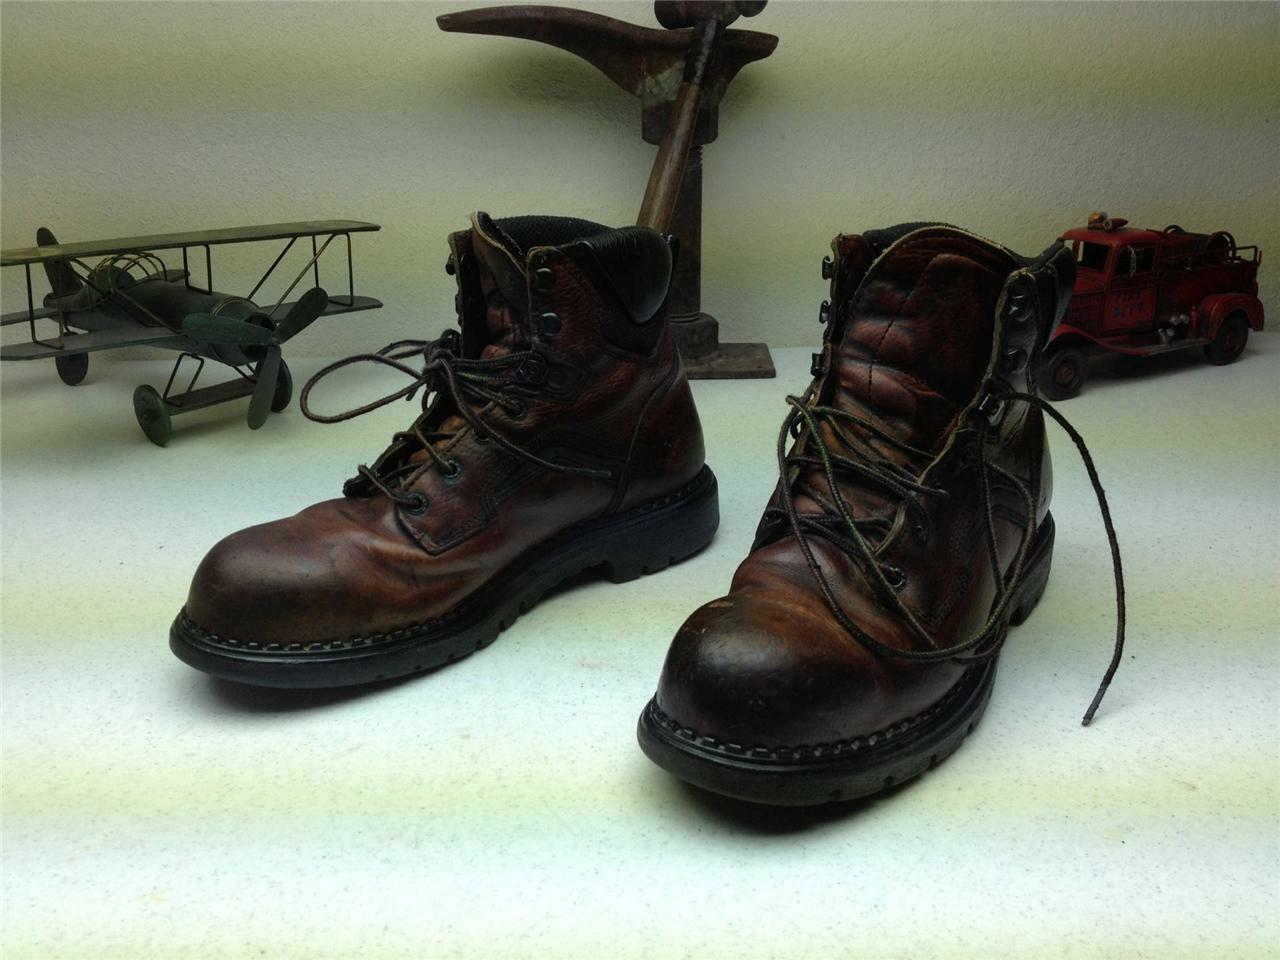 RED WING 2226 BROWN LACE UP STEEL TOE TOE TOE WORK FARM CHORE TRUCKER BOOTS SIZE 9.5 B 942b56